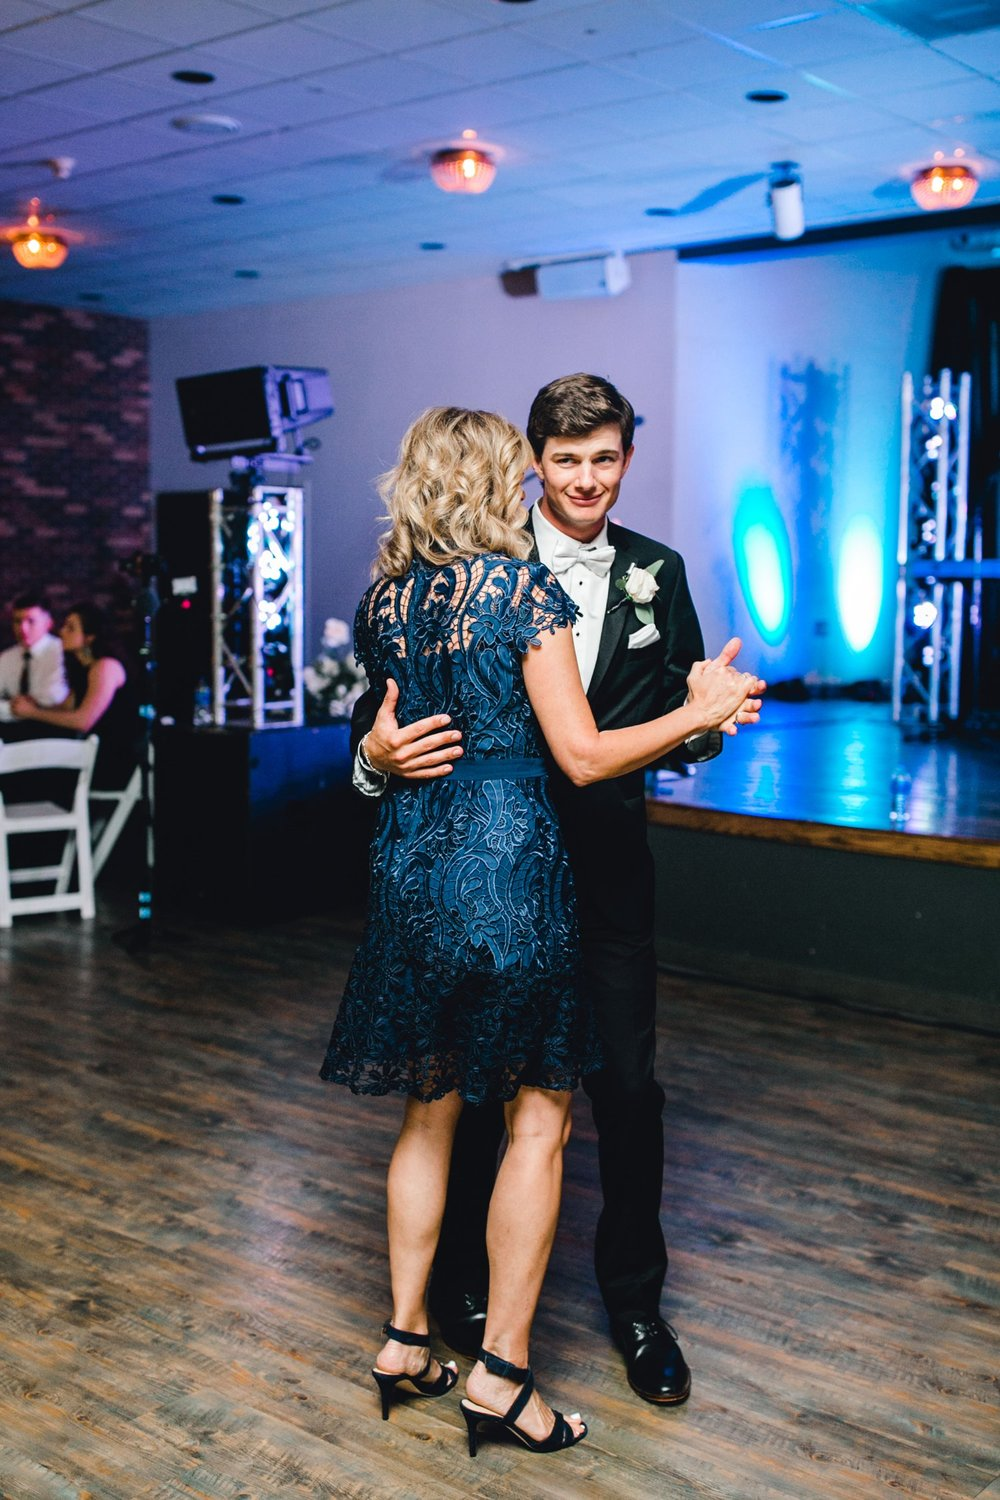 Hunter_and_Molly_Rawls_ALLEEJ_Lubbock_WEDDING_Legacy_Event_Center_0174.jpg